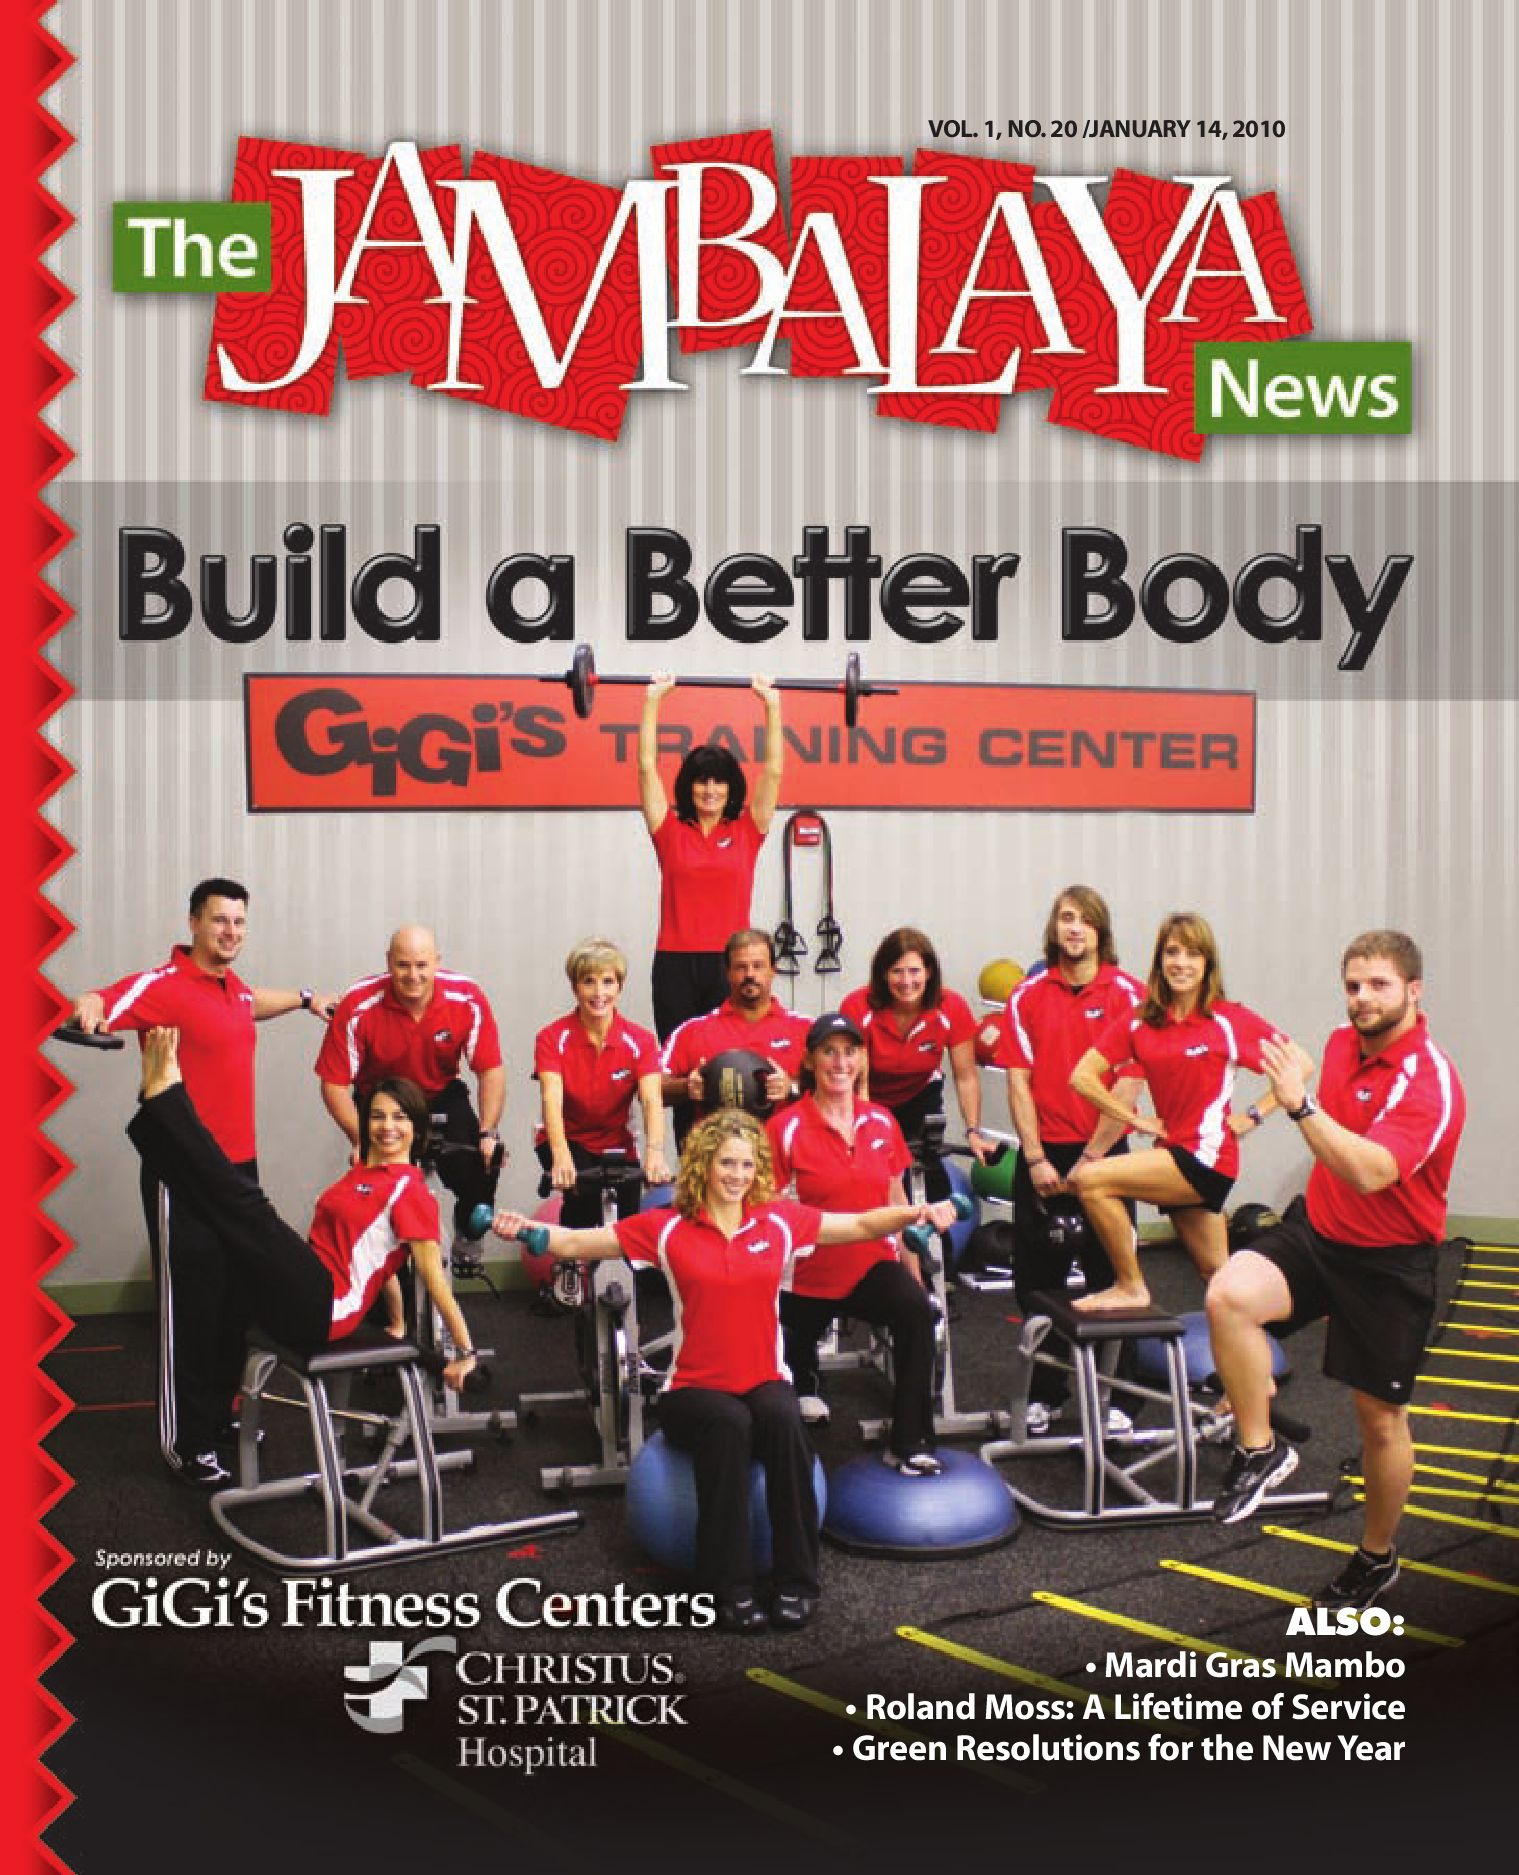 The Jambalaya News - Vol. 1, No. 20 by The Jambalaya News - issuu